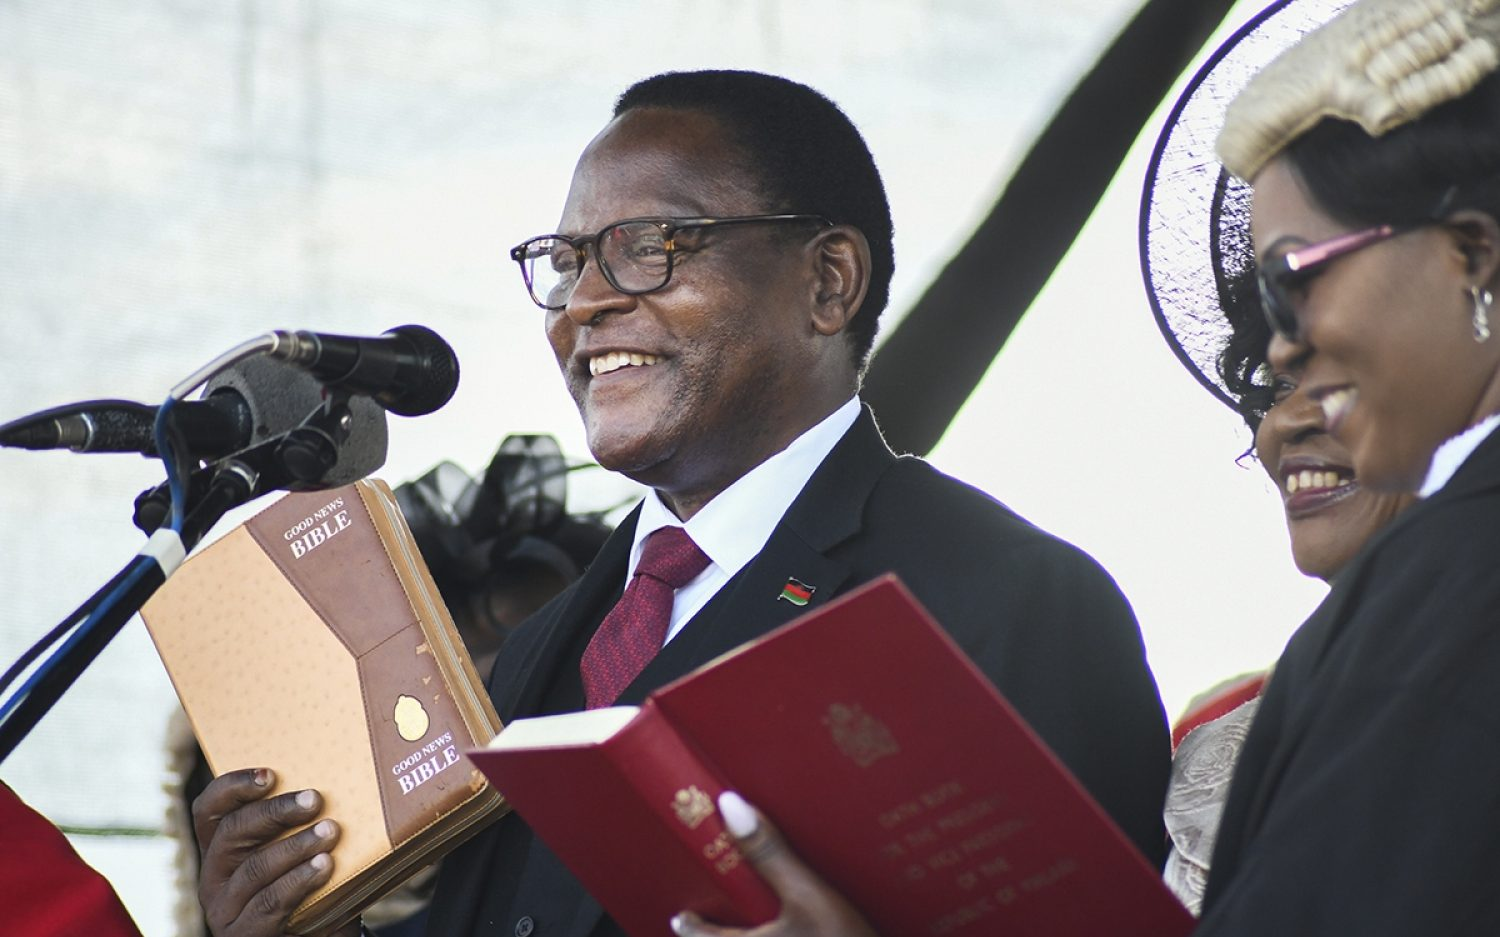 Malawi's new leader trained in church